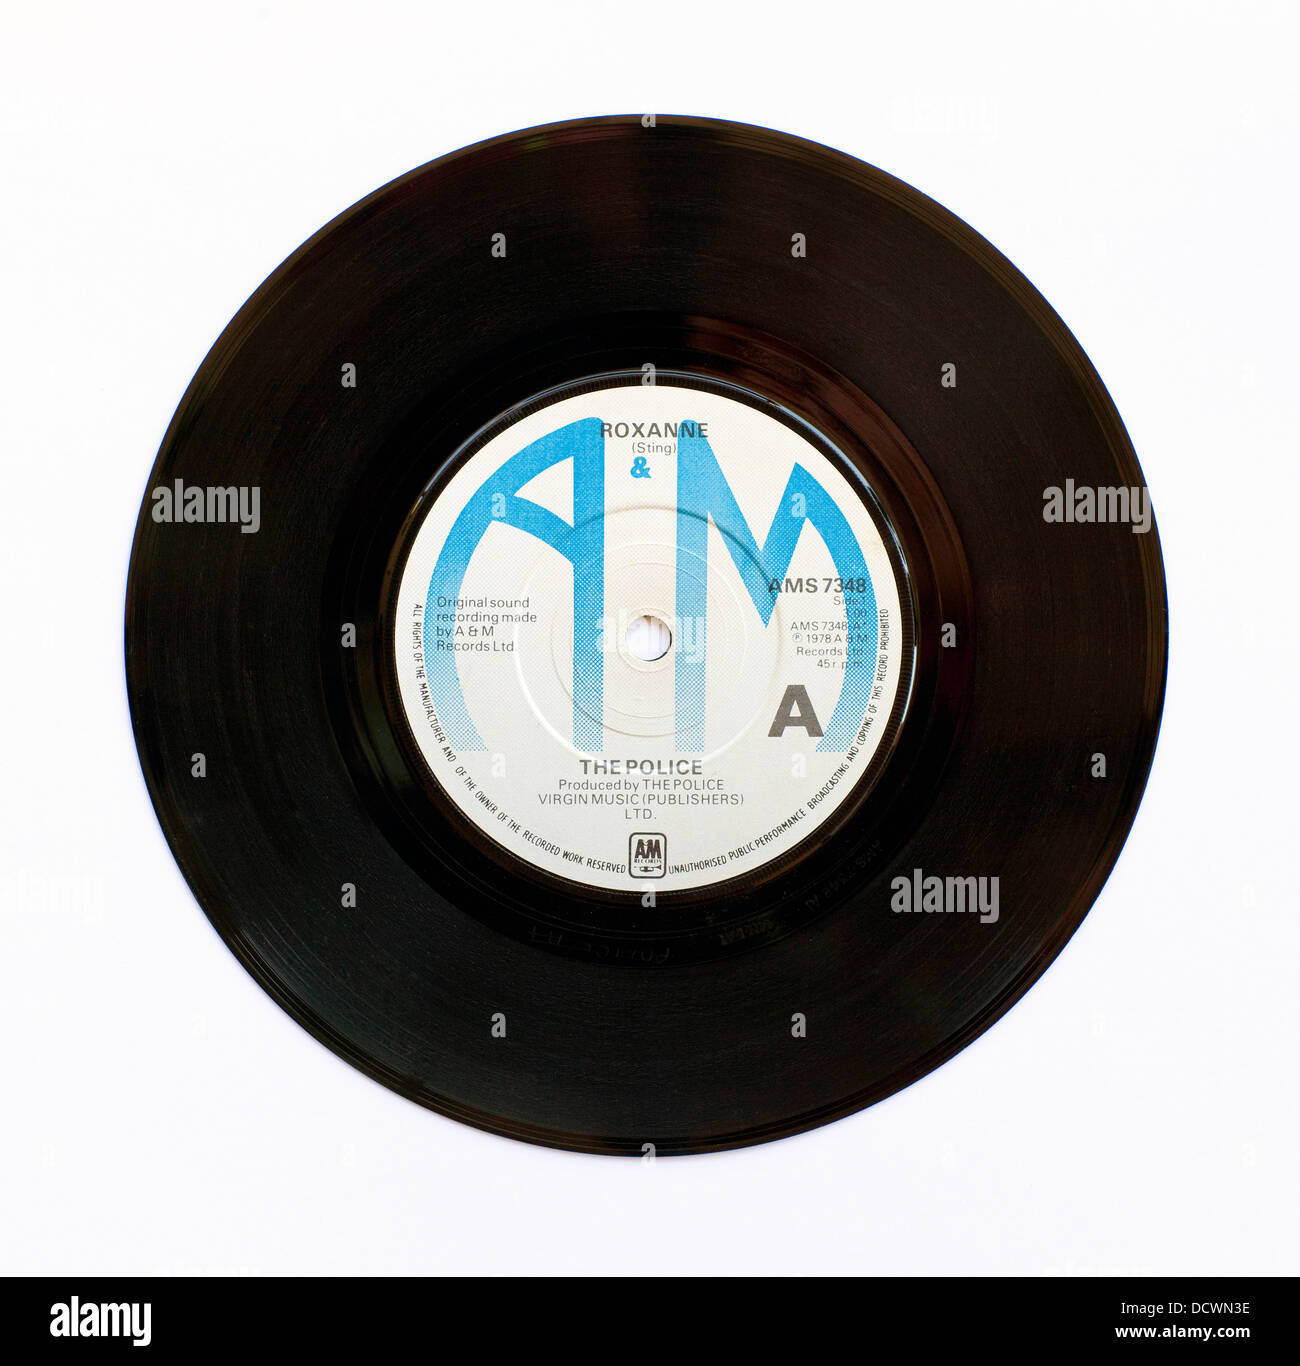 The Police - Roxanne, 1978 7' single on A&M Records - Stock Image